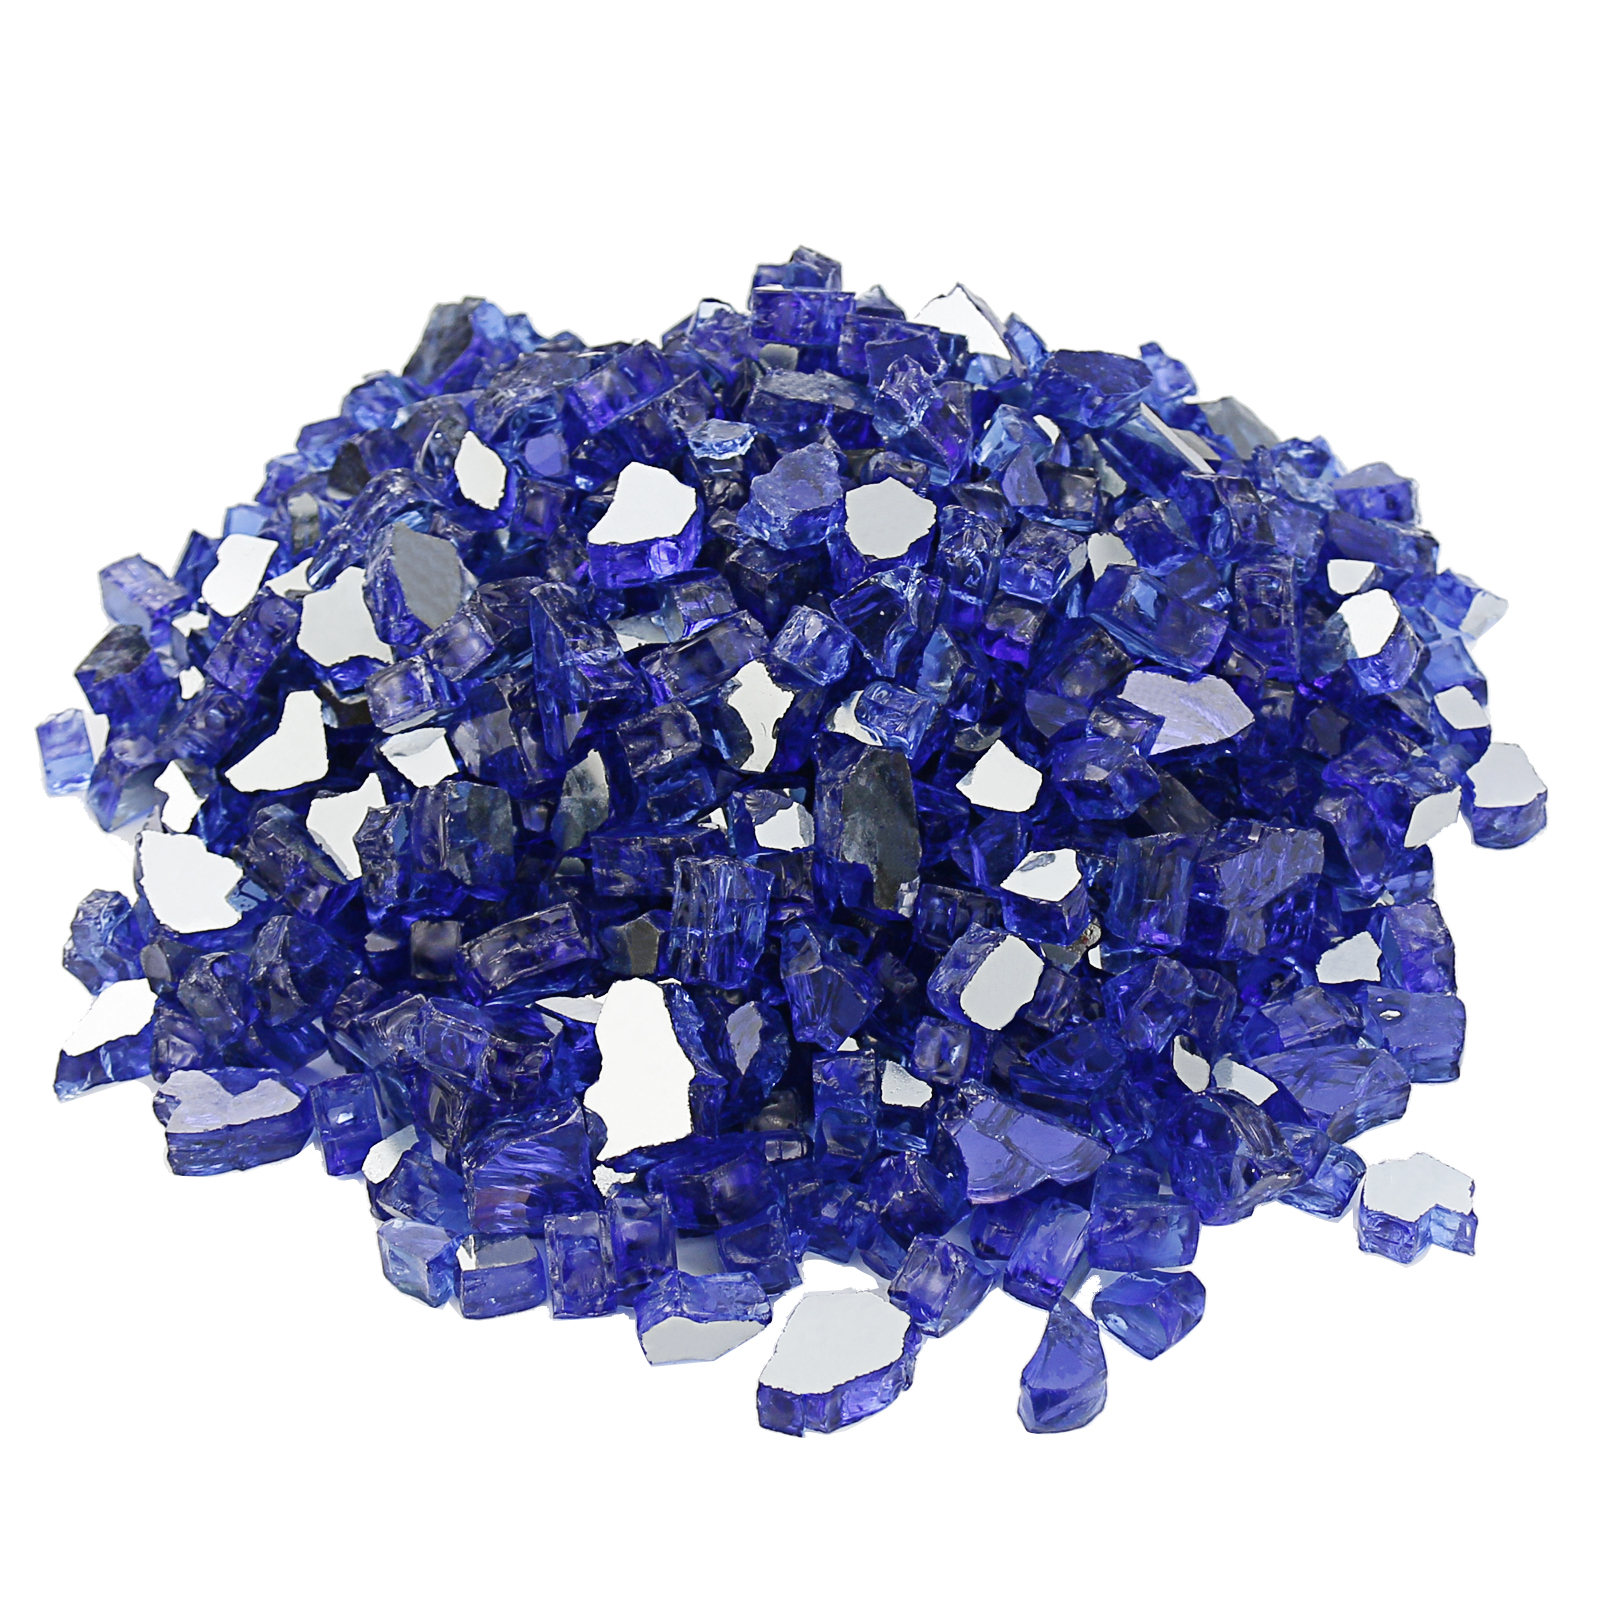 Hisencn 1.8 KG And1/2 Inch Cobalt Blue Reflective Fire Glass Decorative For Natural Or Propane Fire Pit, Fireplace